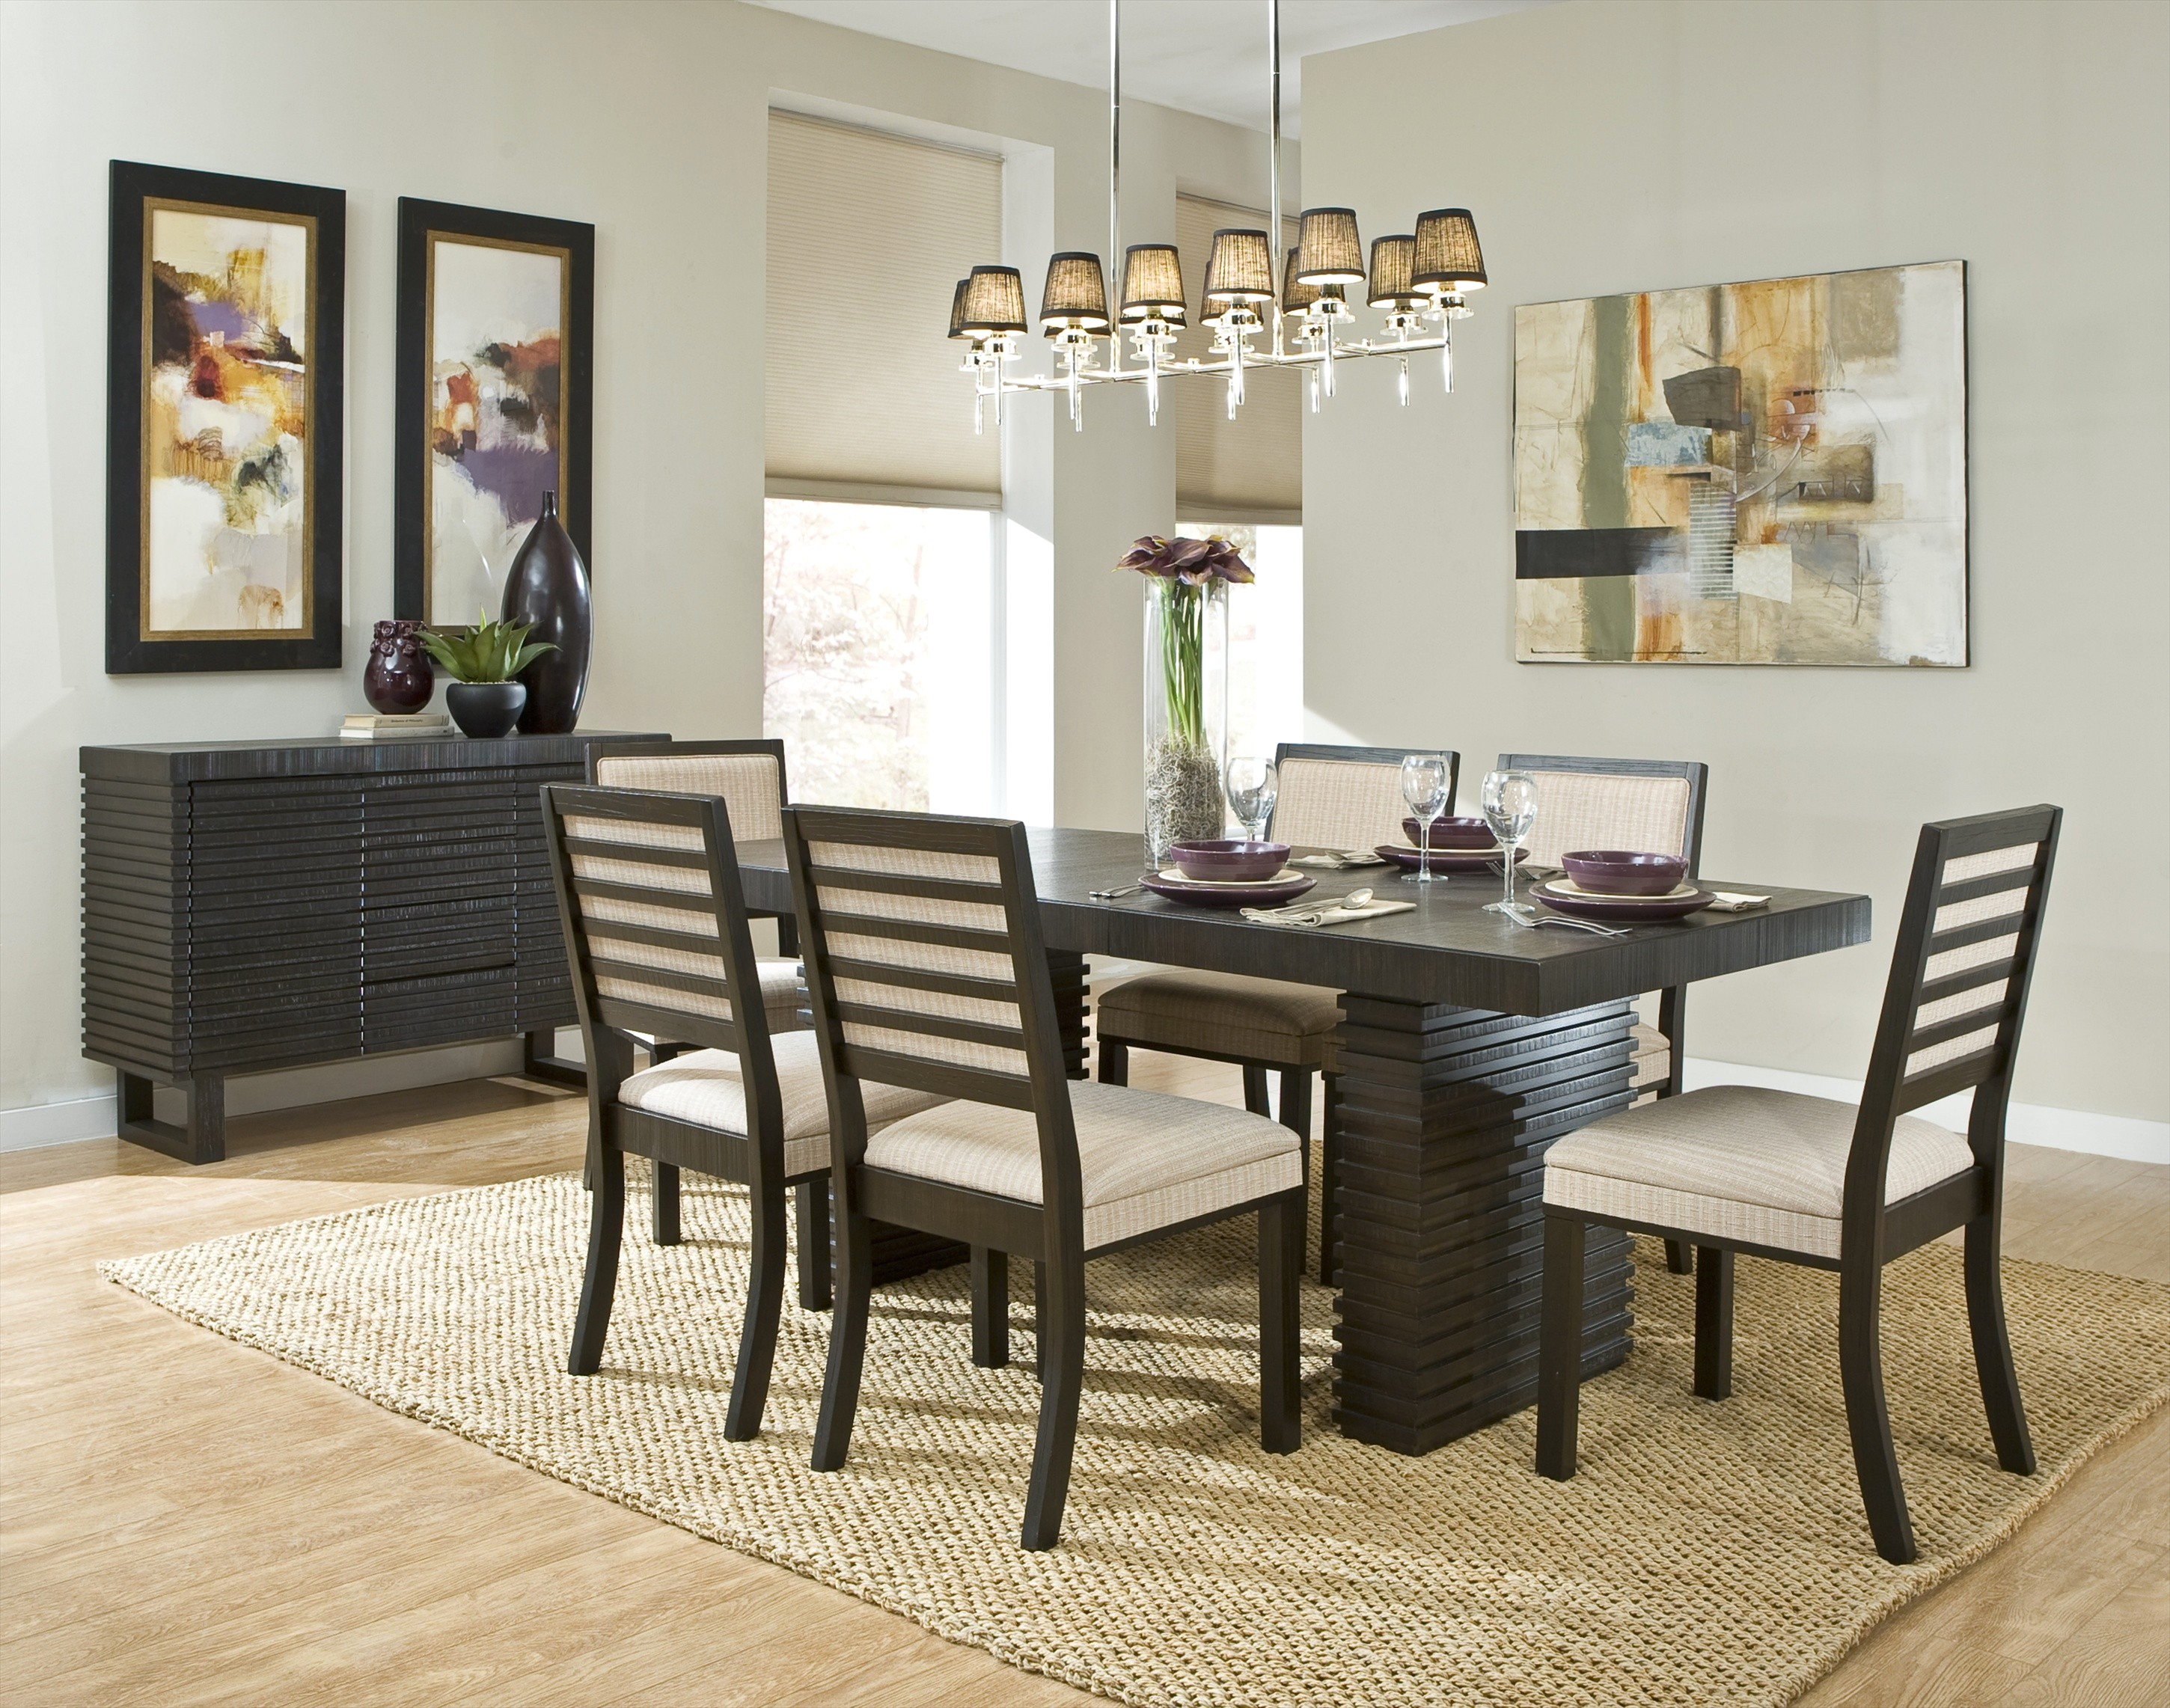 Contemporary Modern Dining Room With Cool Chandelier Rug And Wooden Furniture Set Accessories